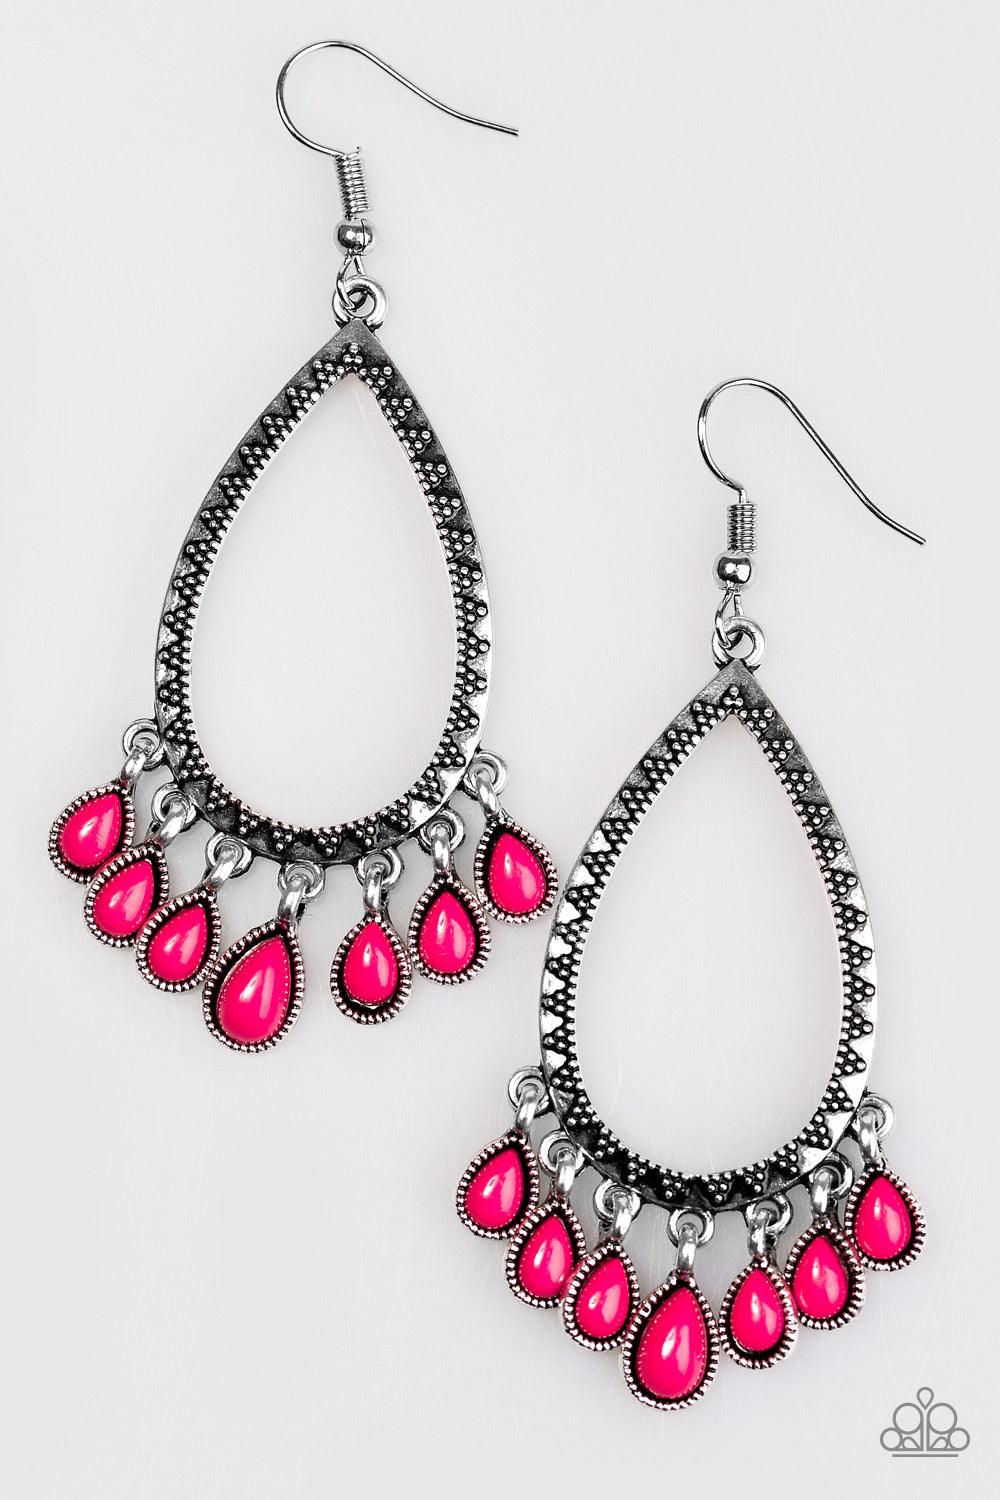 five-dollar-jewelry-radiant-bursts-pink-earrings-paparazzi-accessories